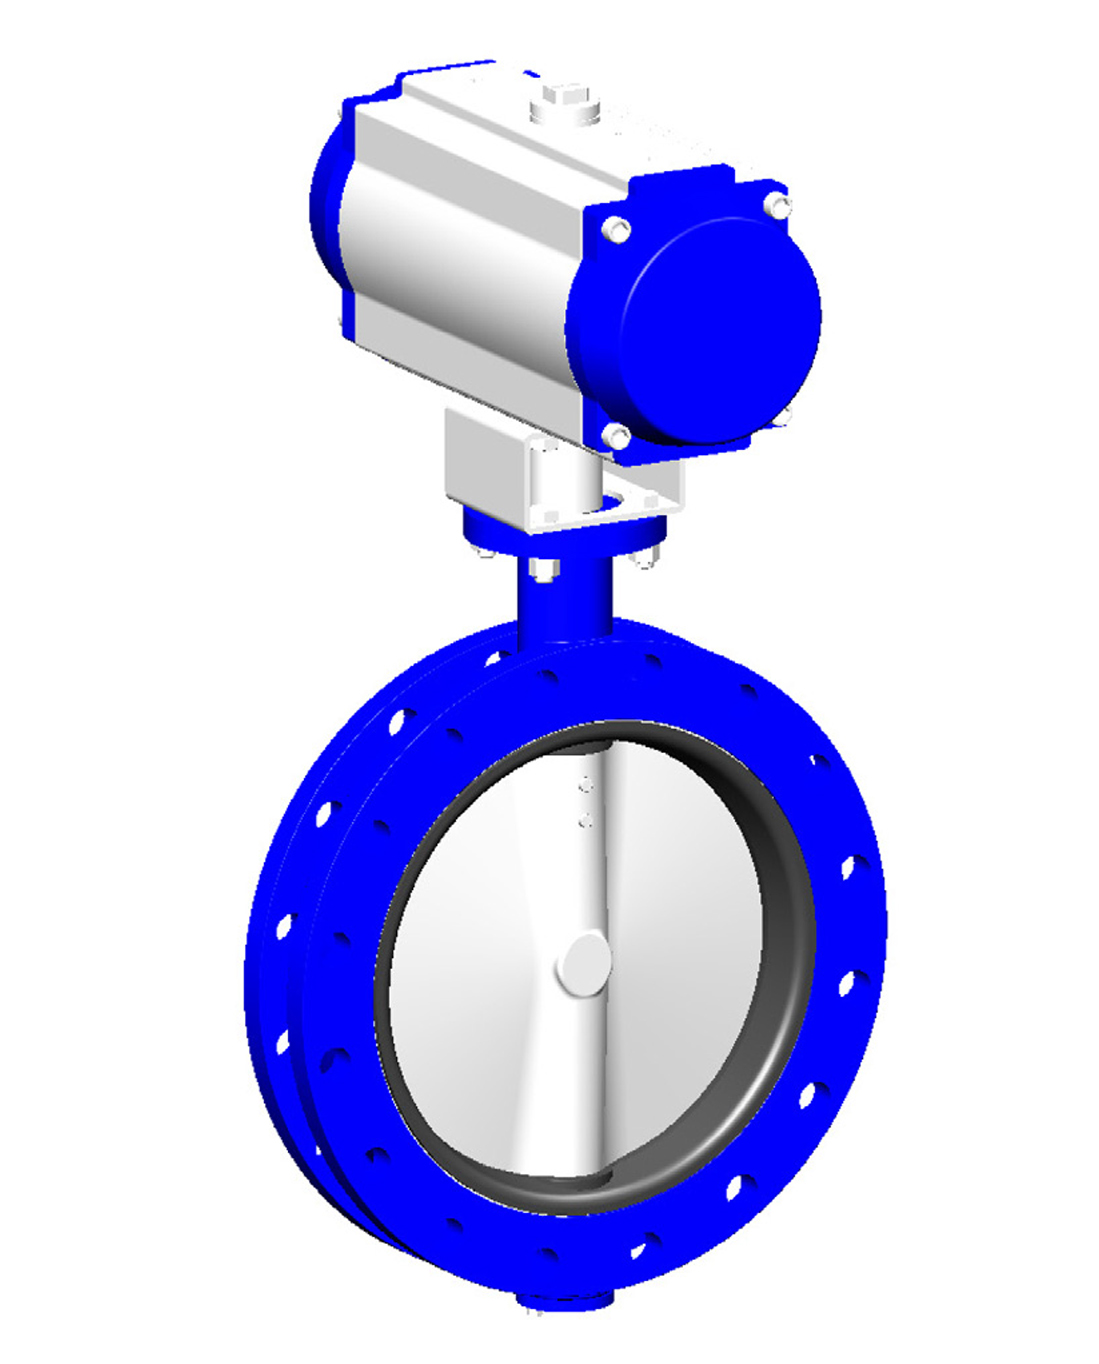 Double flanges type butterfly valve PN10 – ductile iron body – ductile iron disc – single acting pneumatic operator